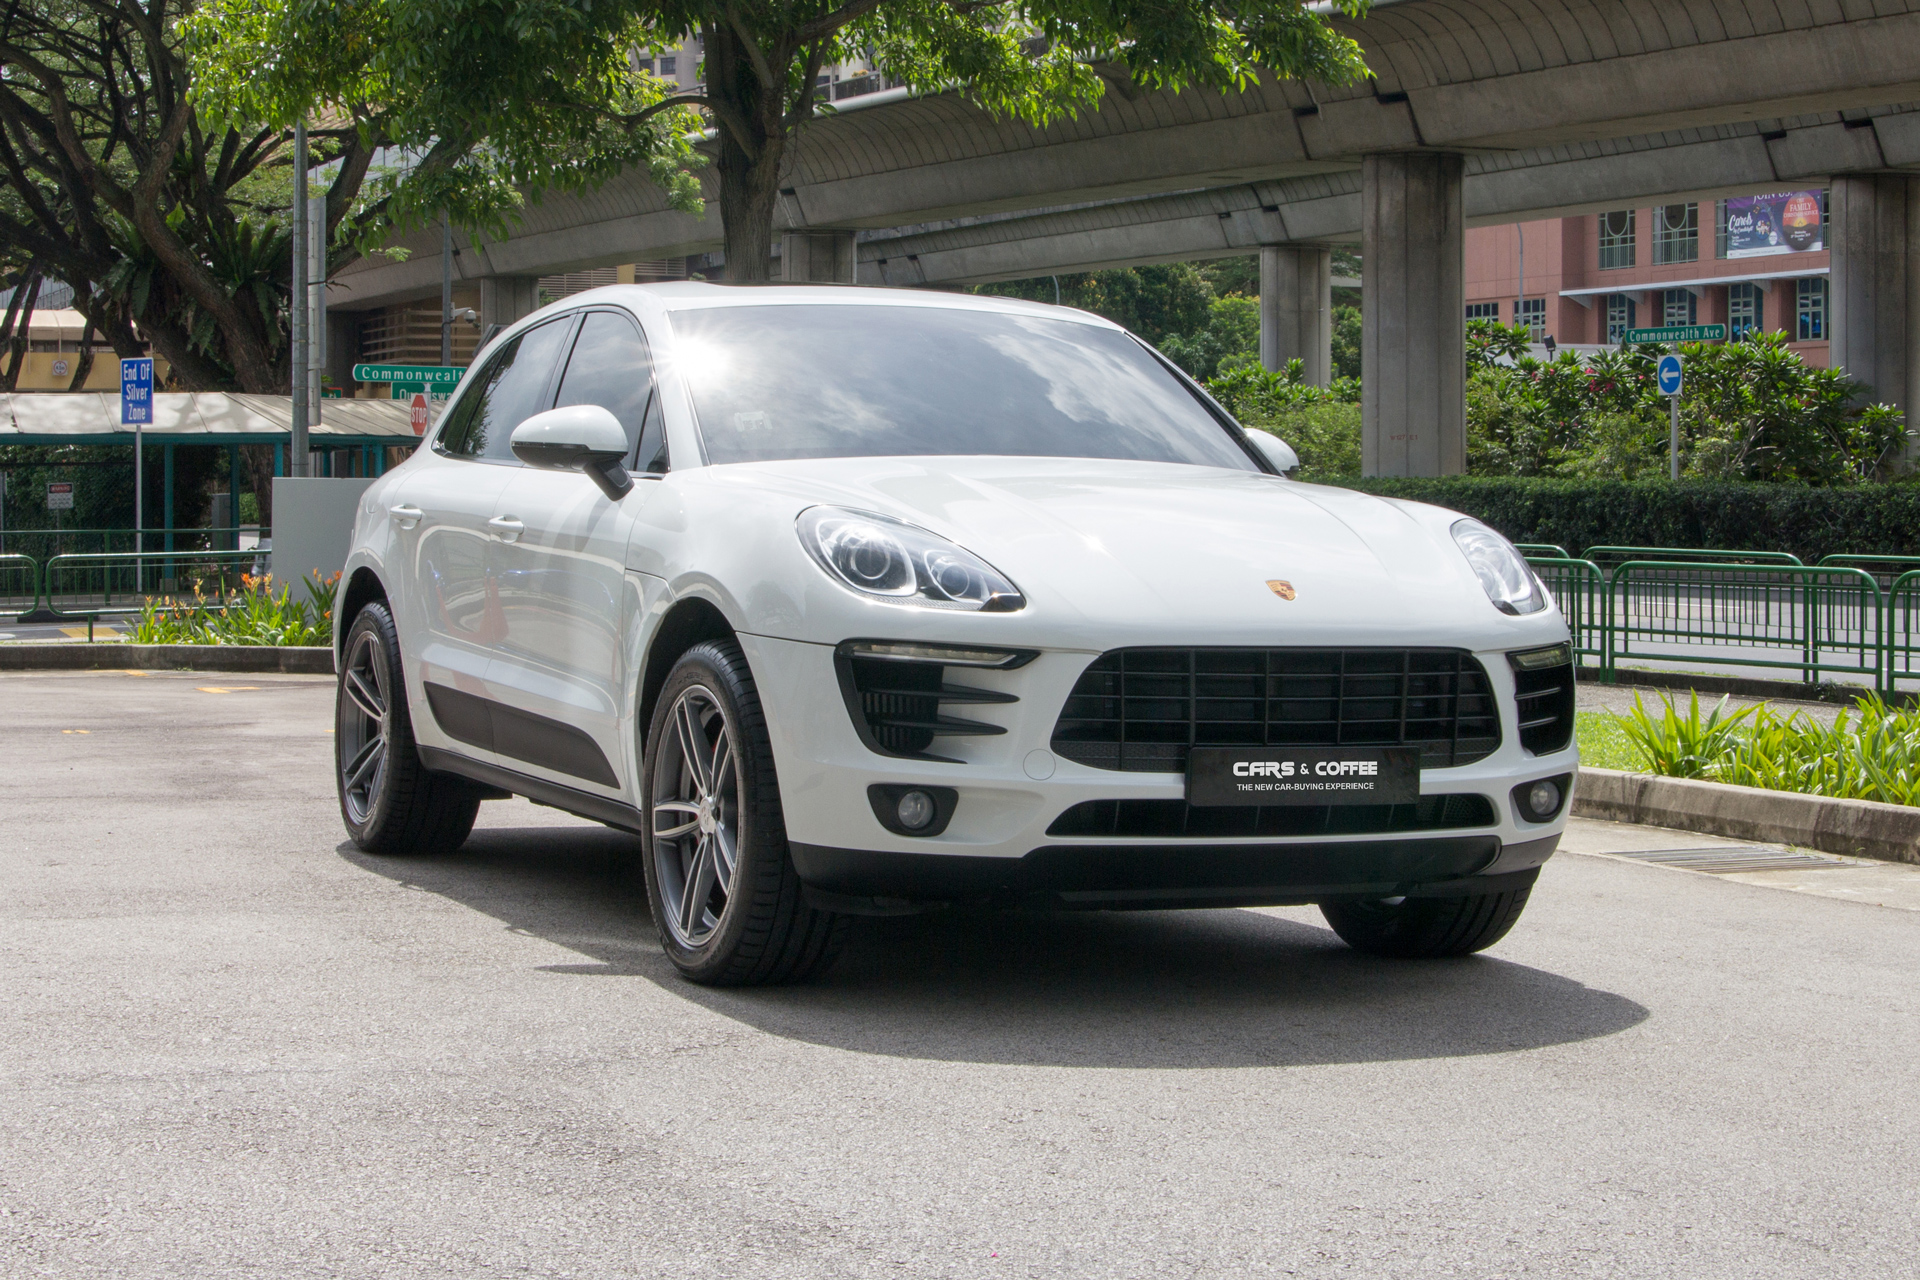 Certified Pre-Owned Porsche Macan S 3.0A PDK   Cars and Coffee Singapore